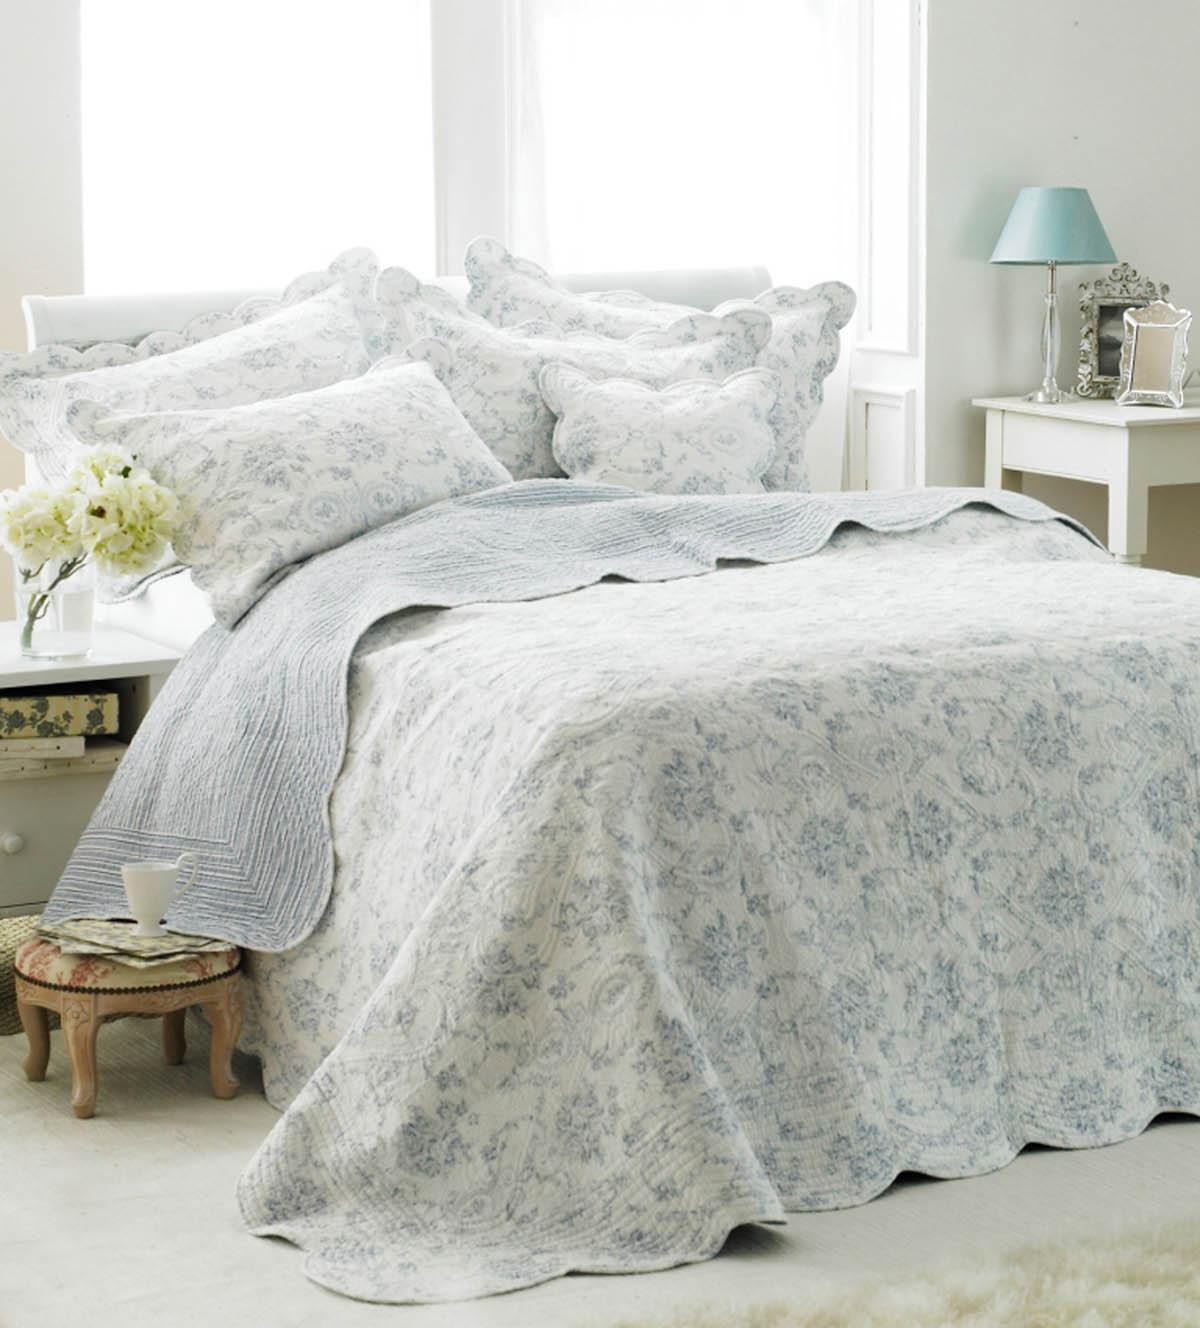 Blue Etoille Quilted Bedspread